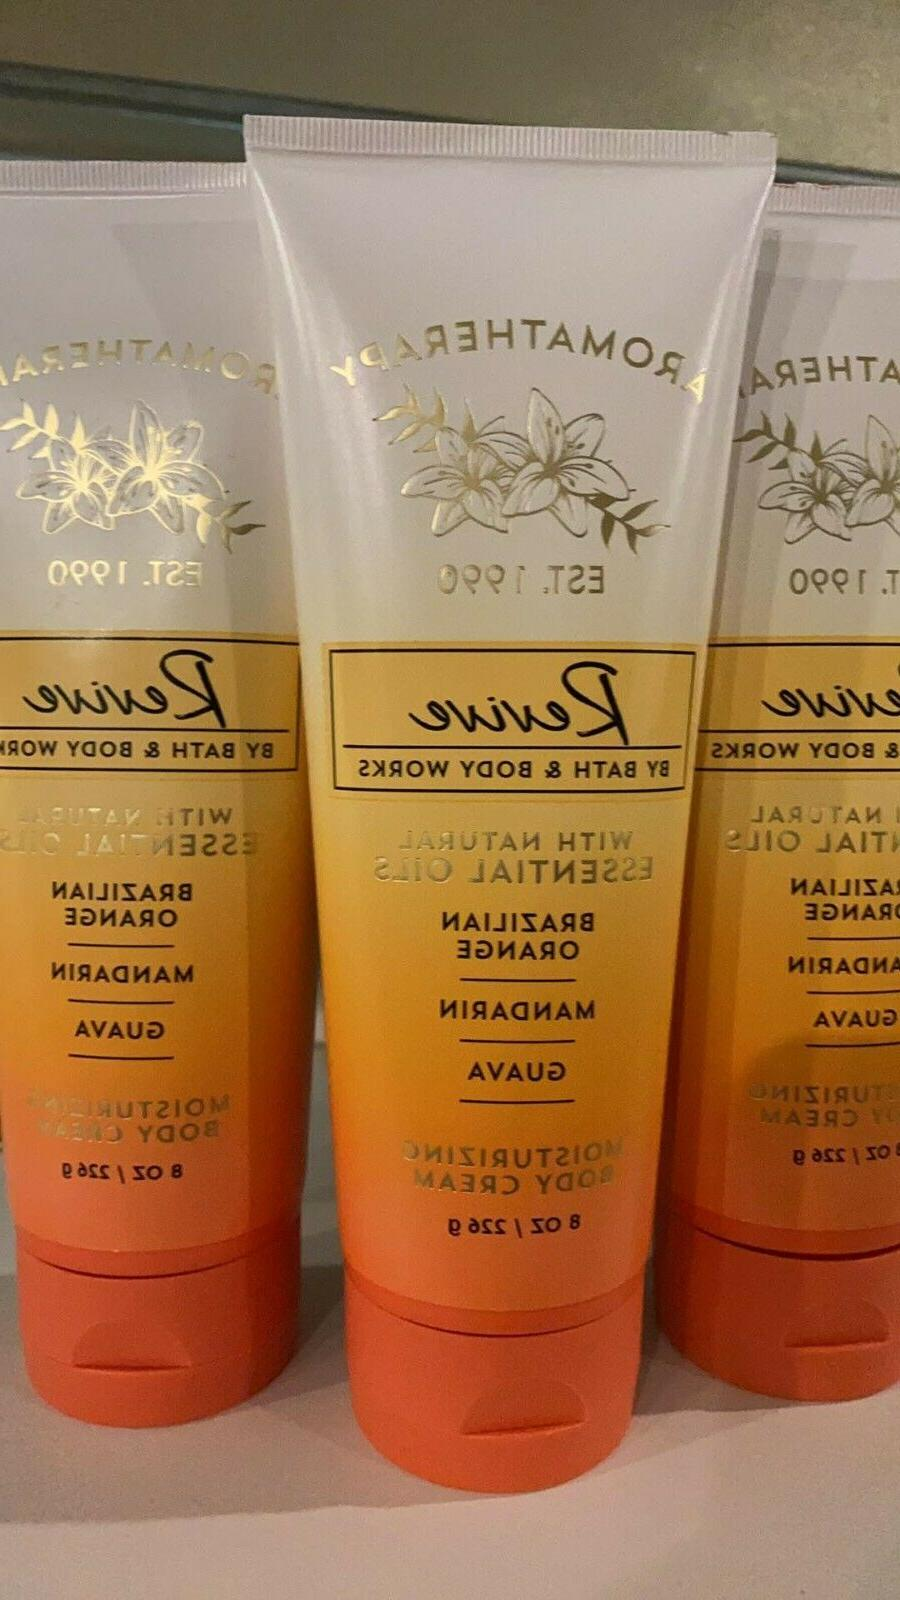 3 bath and body works champagne toast